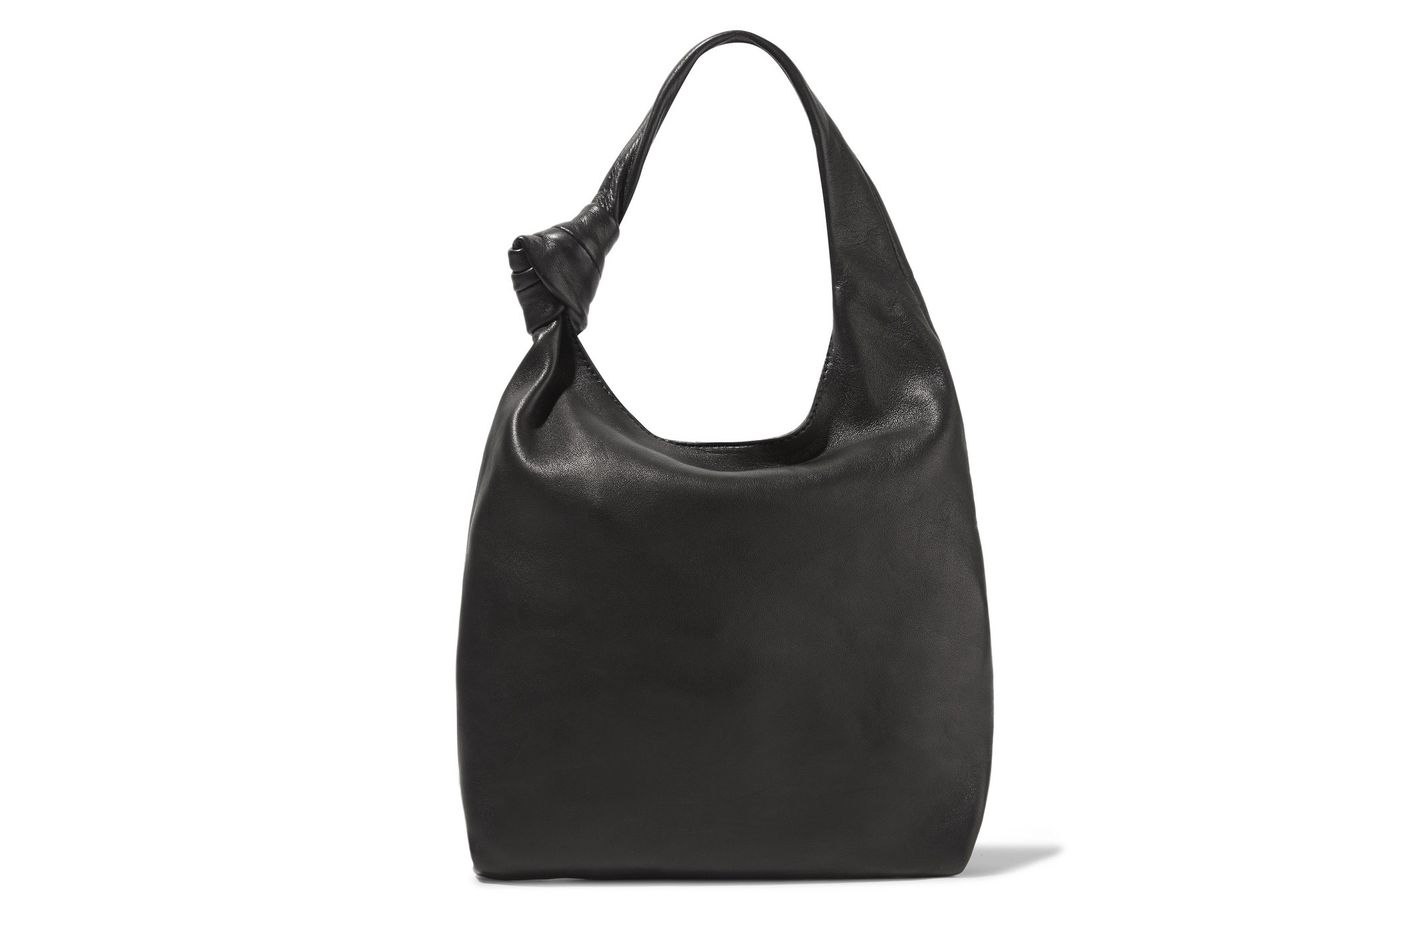 Loeffler Randall Knot Mini-Leather Tote